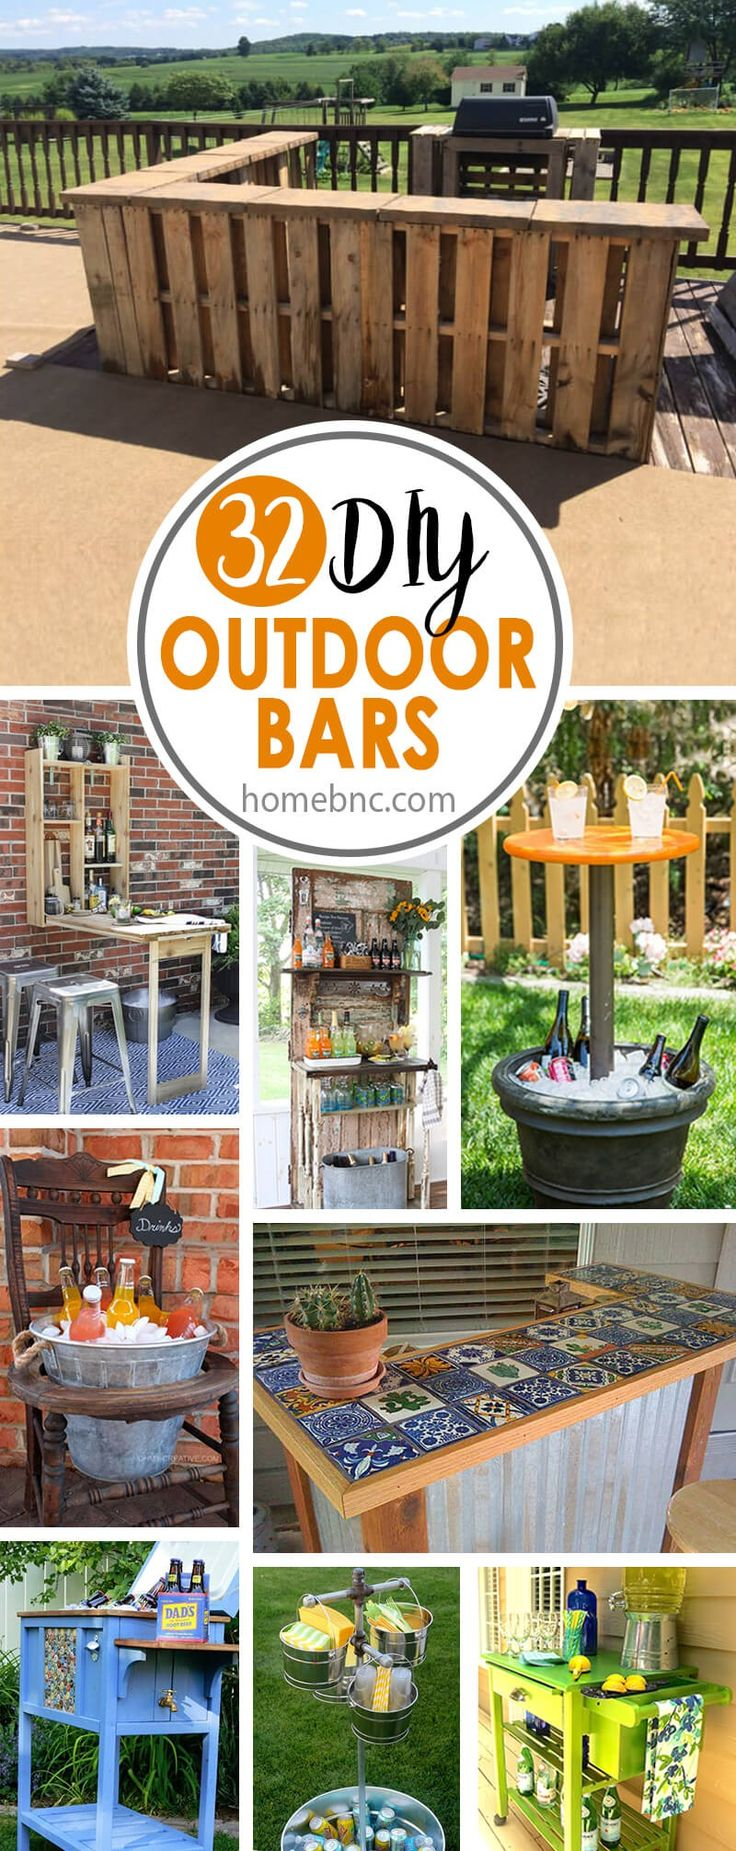 Summer is just around the corner, which means that if you have a backyard, you will want to start entertaining guests outside. One of the issues with the summer heat is keeping drinks cold while you are waiting for dinner to be prepared on the grill. DIY outdoor bars are a great solution to...